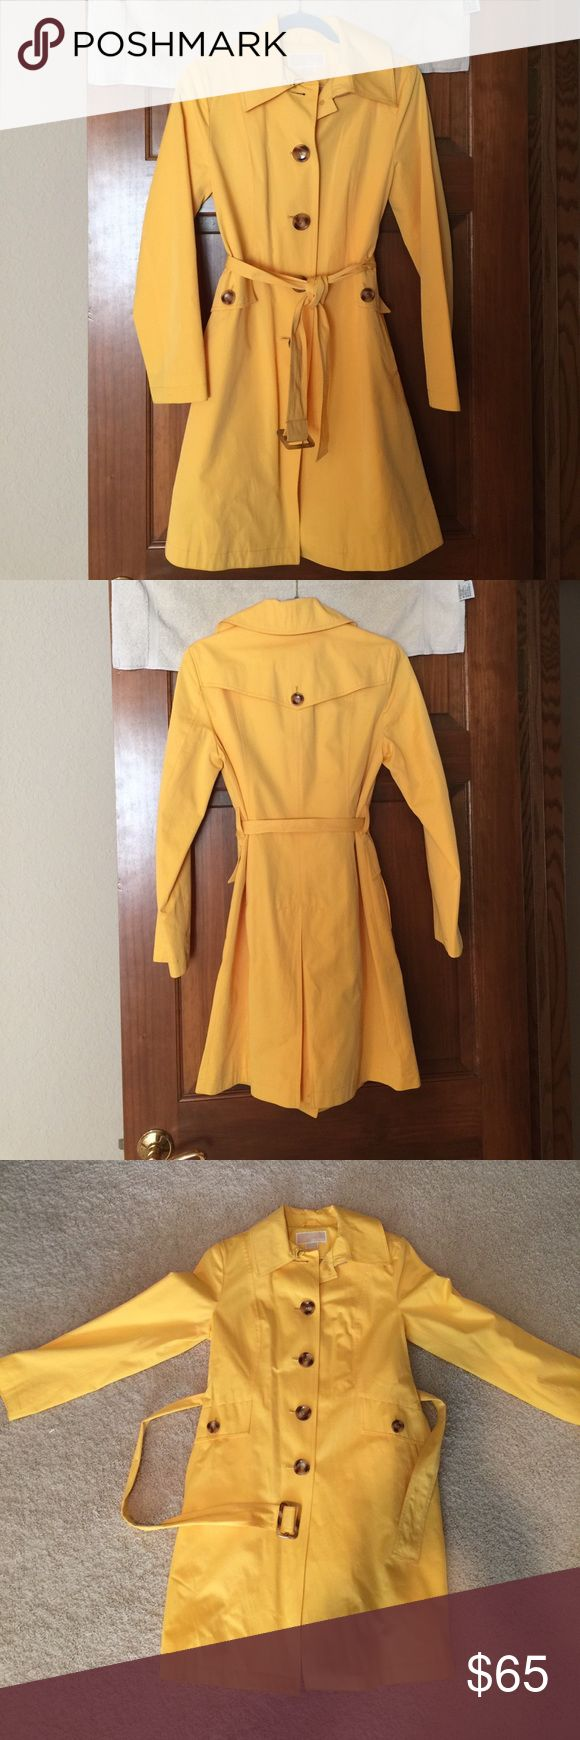 Michael Kors Trench coat This Michael Kors summery yellow trench coat is the perfect coat! It is in excellent shape and is a size small. The tag in the inside says S/P. It has four buttons on the front of the coat as well as two pockets on the front with buttons. There is a small mark on one of the pockets which I have noted in the pictures. This also has a cute belt that ties at the waist. Michael Kors Jackets & Coats Trench Coats